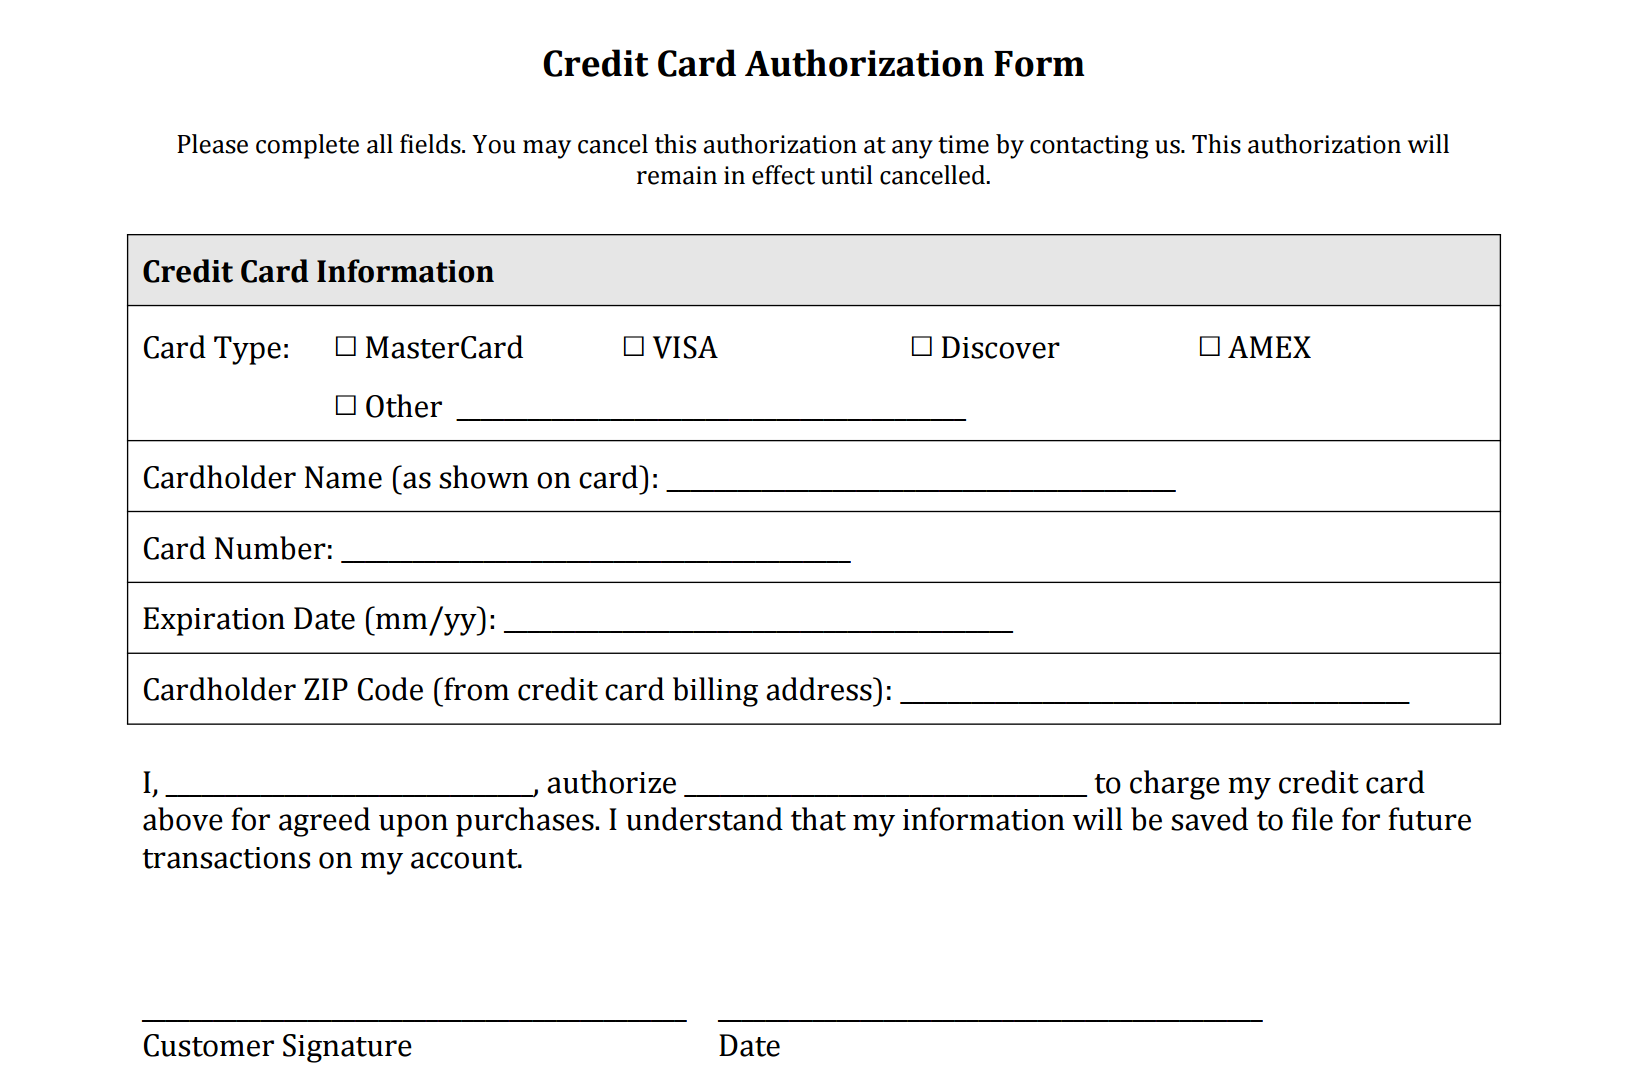 Credit Card Authorization Form Free Download